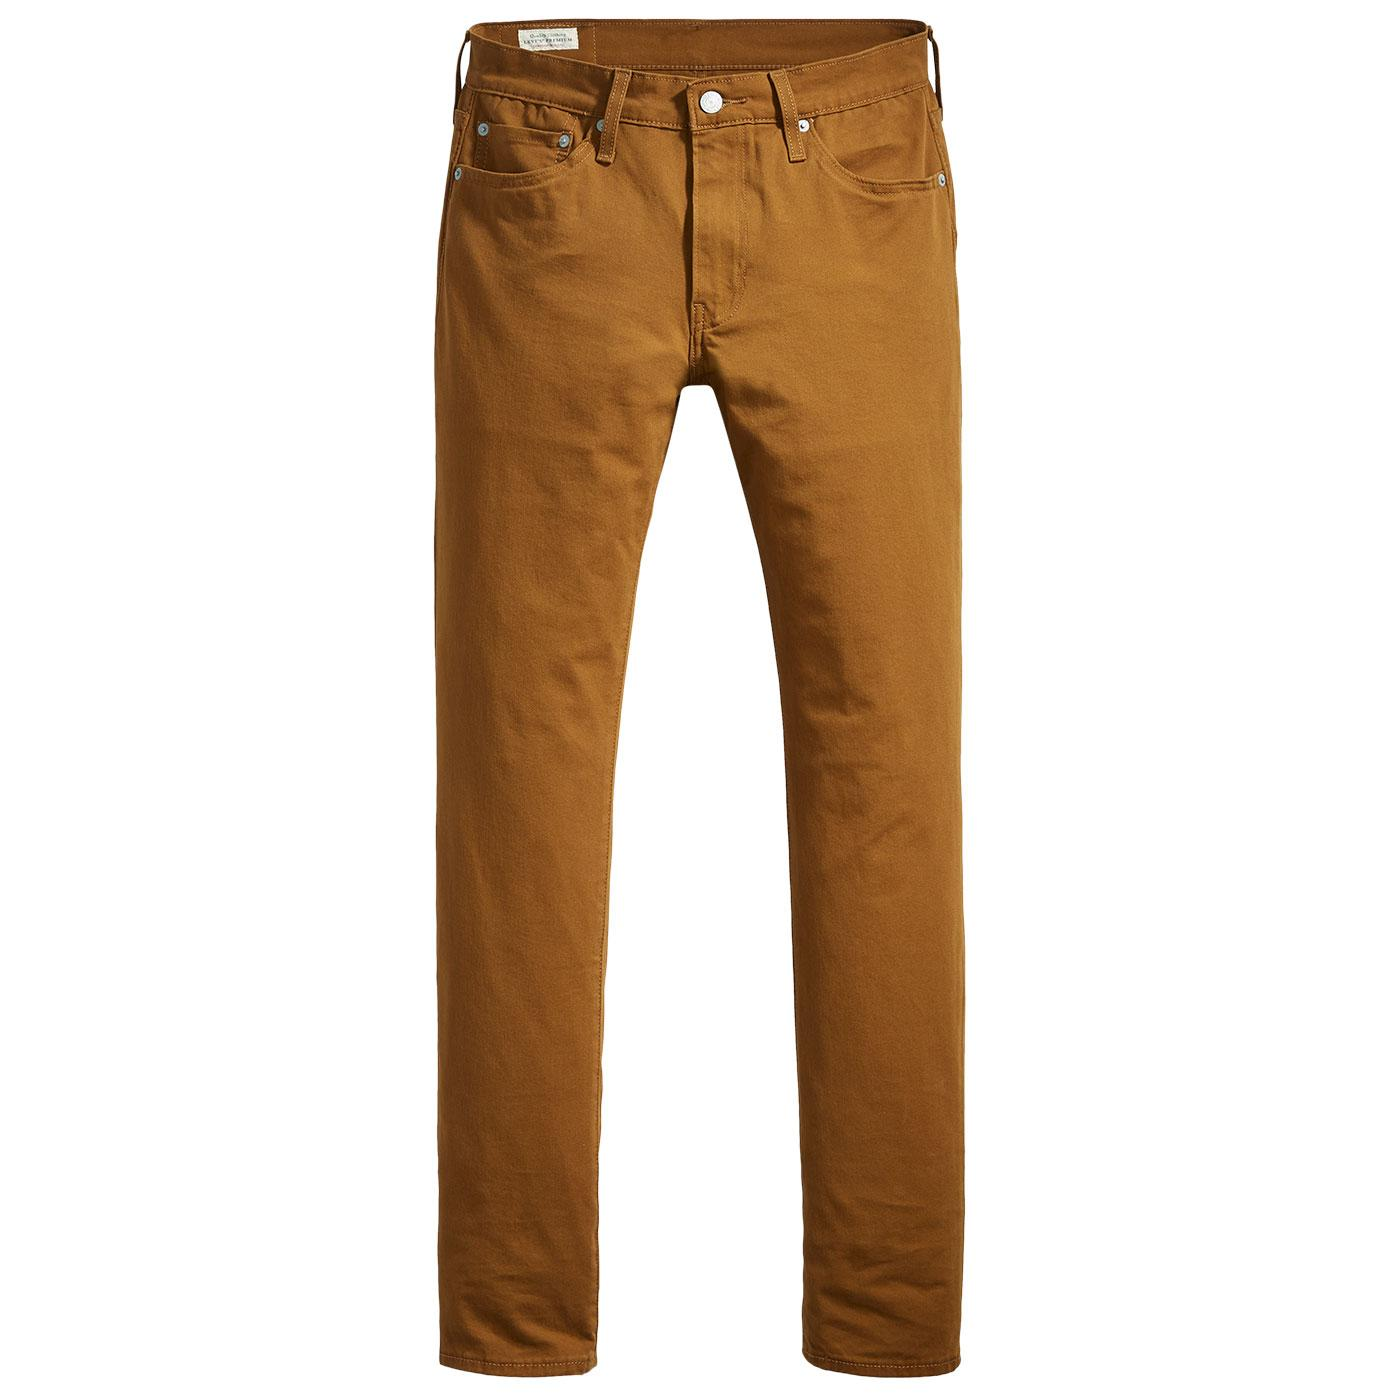 LEVI'S 511 Slim Fit Chino Trousers (Monks Robe)